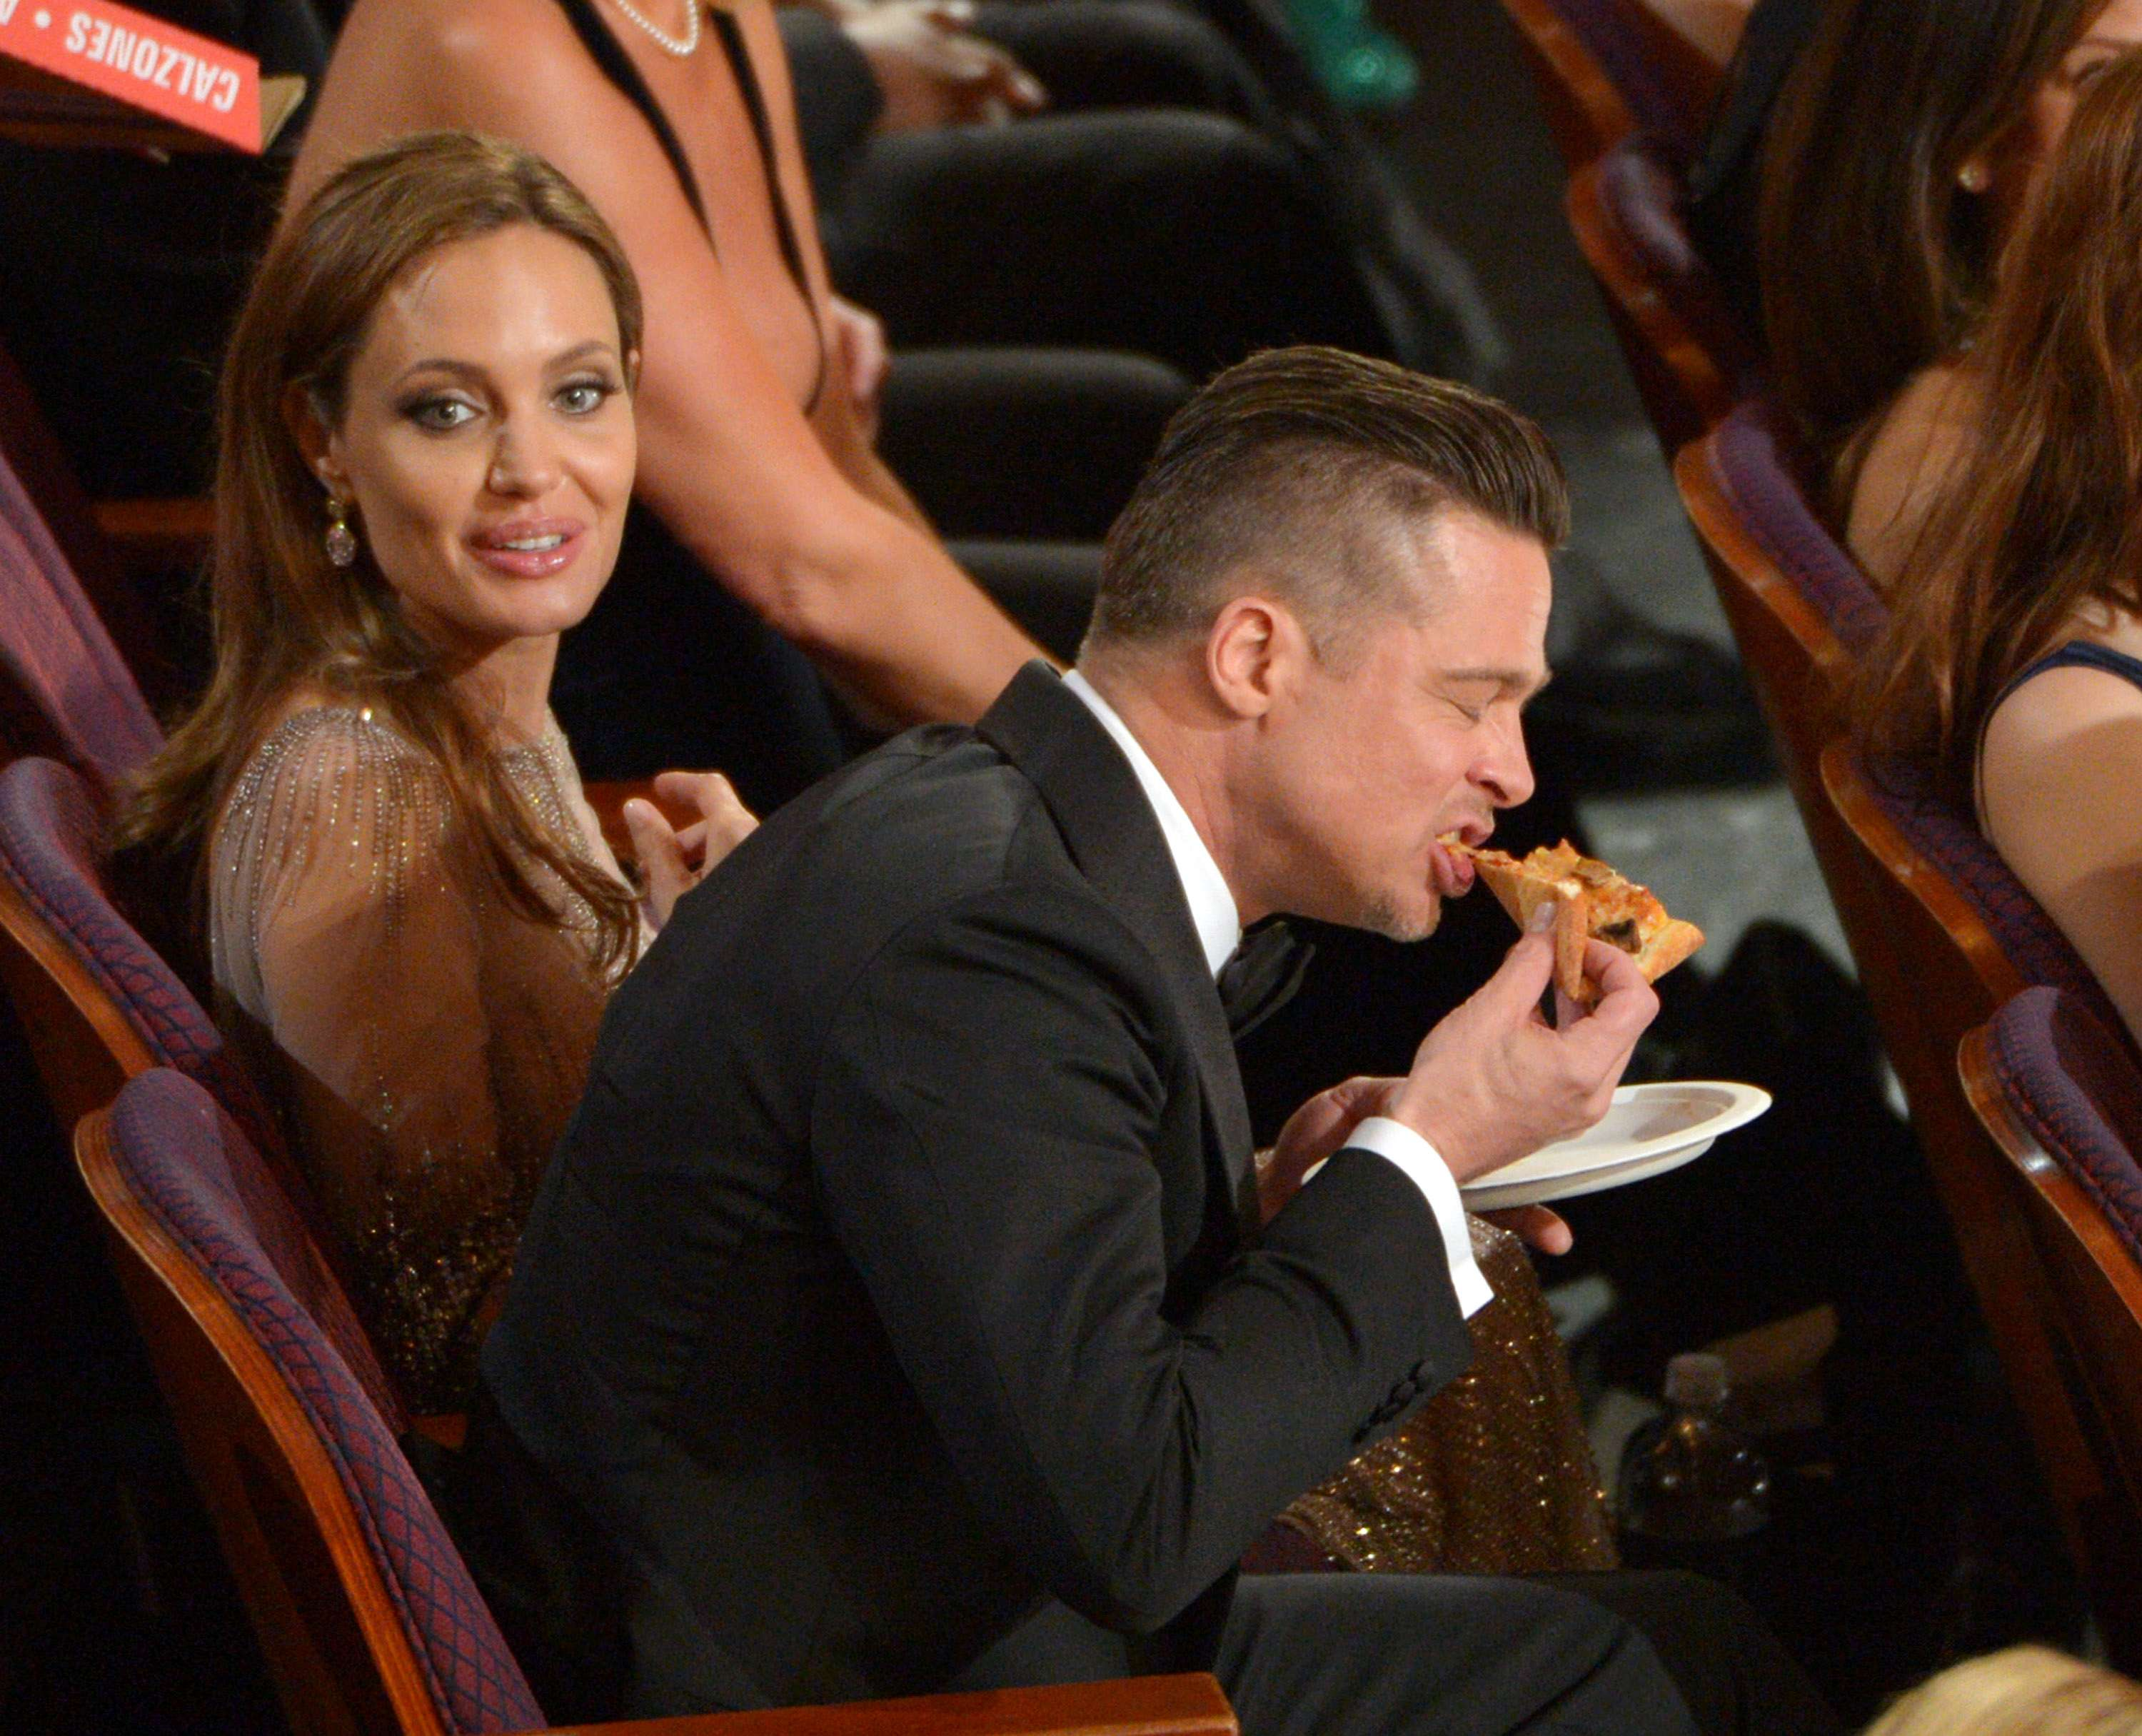 Tombo e pizza: veja os gifs mais divertidos do Oscar 2014